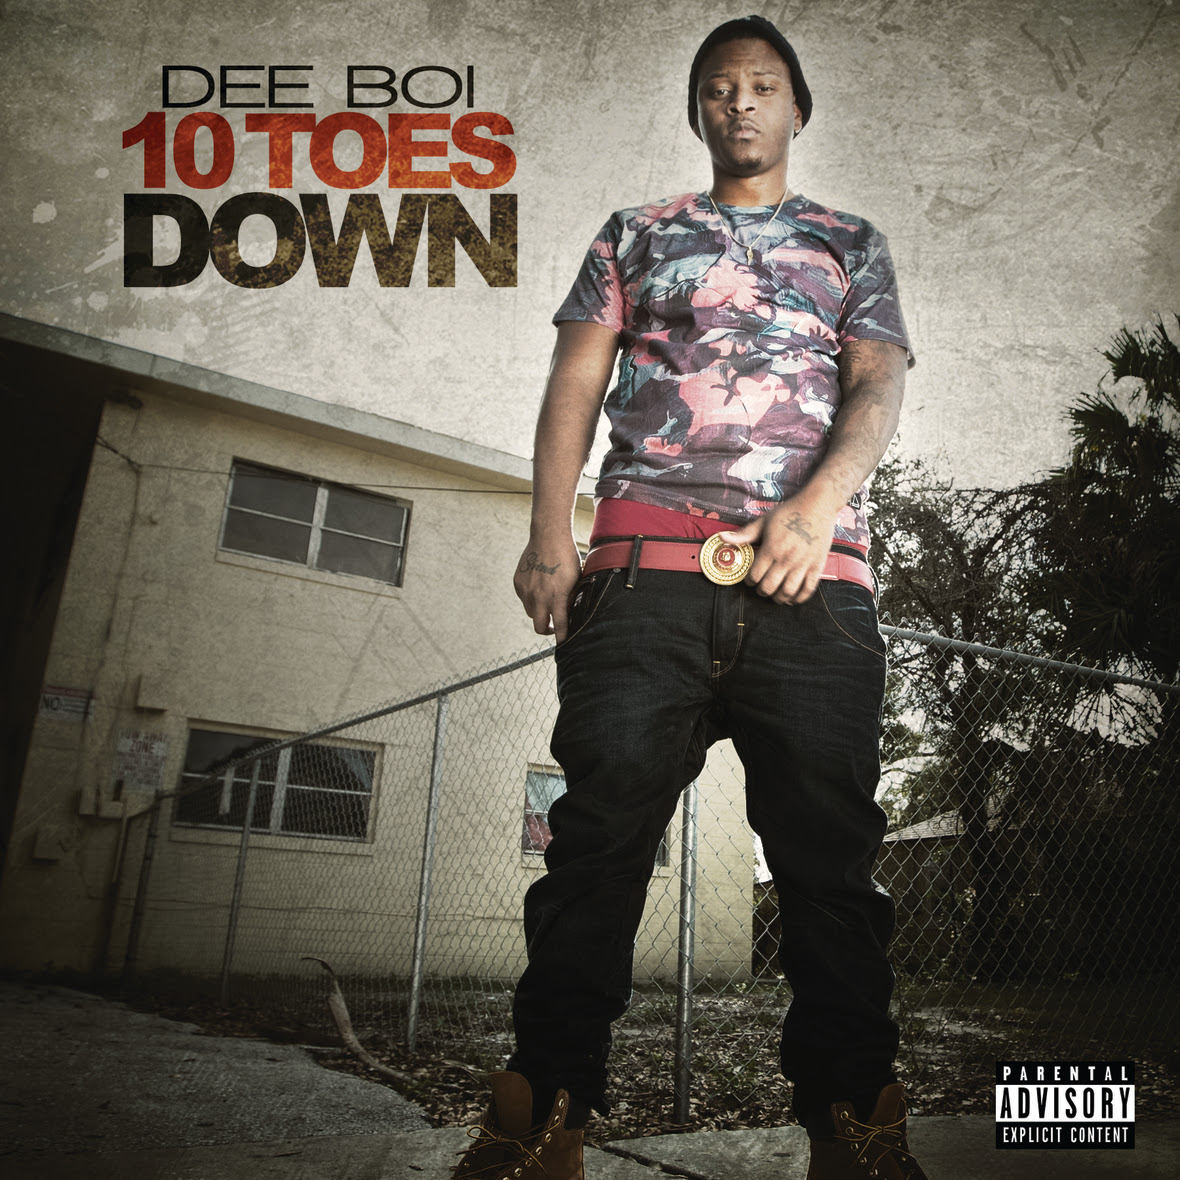 Dee Boi 10 Toes Down Mixtape Cover